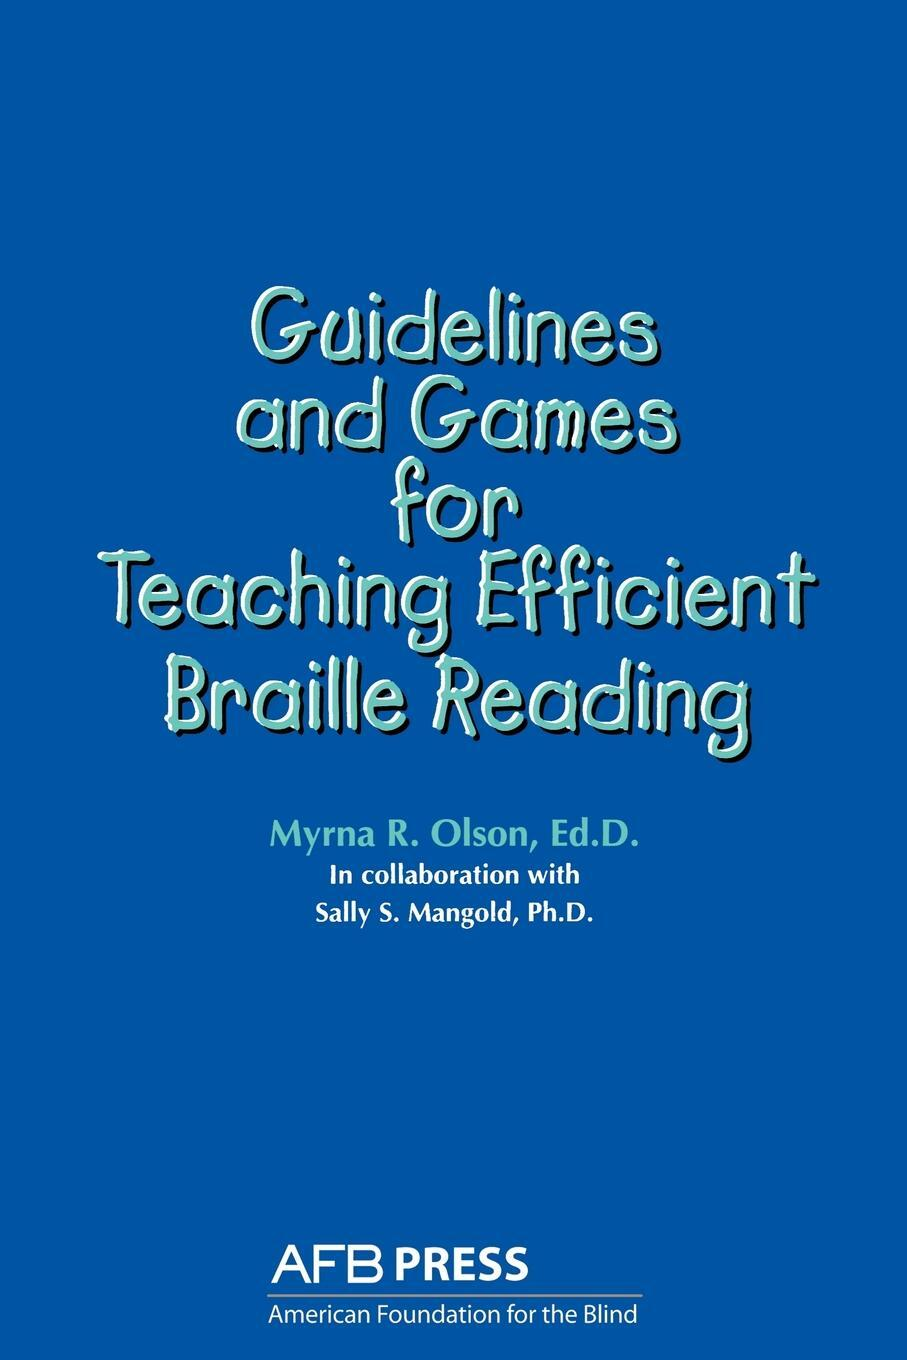 Guidelines and Games for Teaching Efficient Braille Reading. Myrna R. Olson, Sally S. Mangold